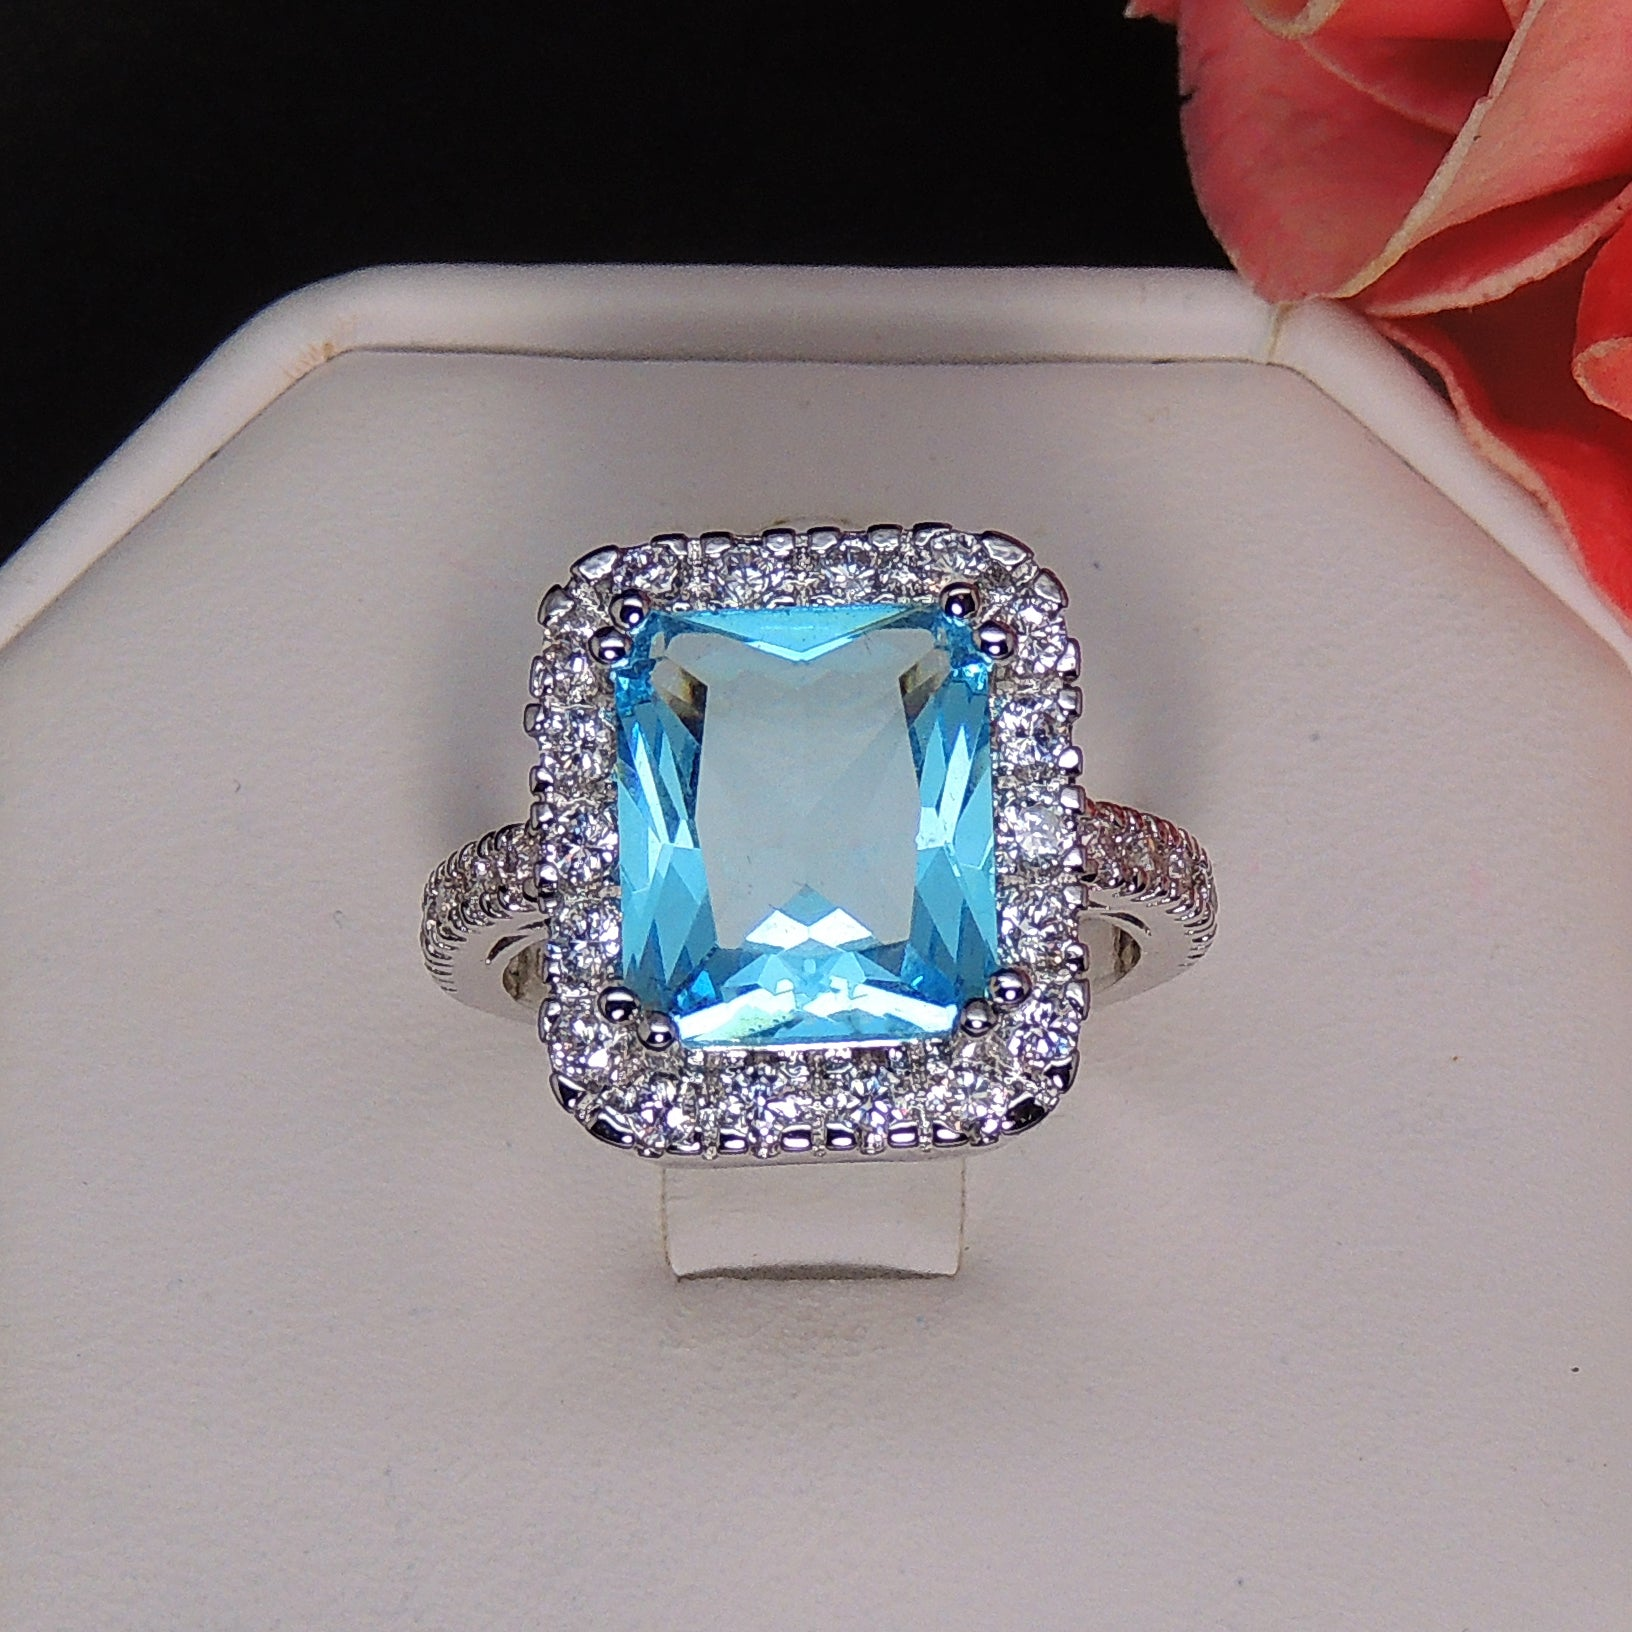 Gina Simulated Blue Topaz Exquisite 6 Carat Radiant Cut Ring- Ginger Lyne Collection